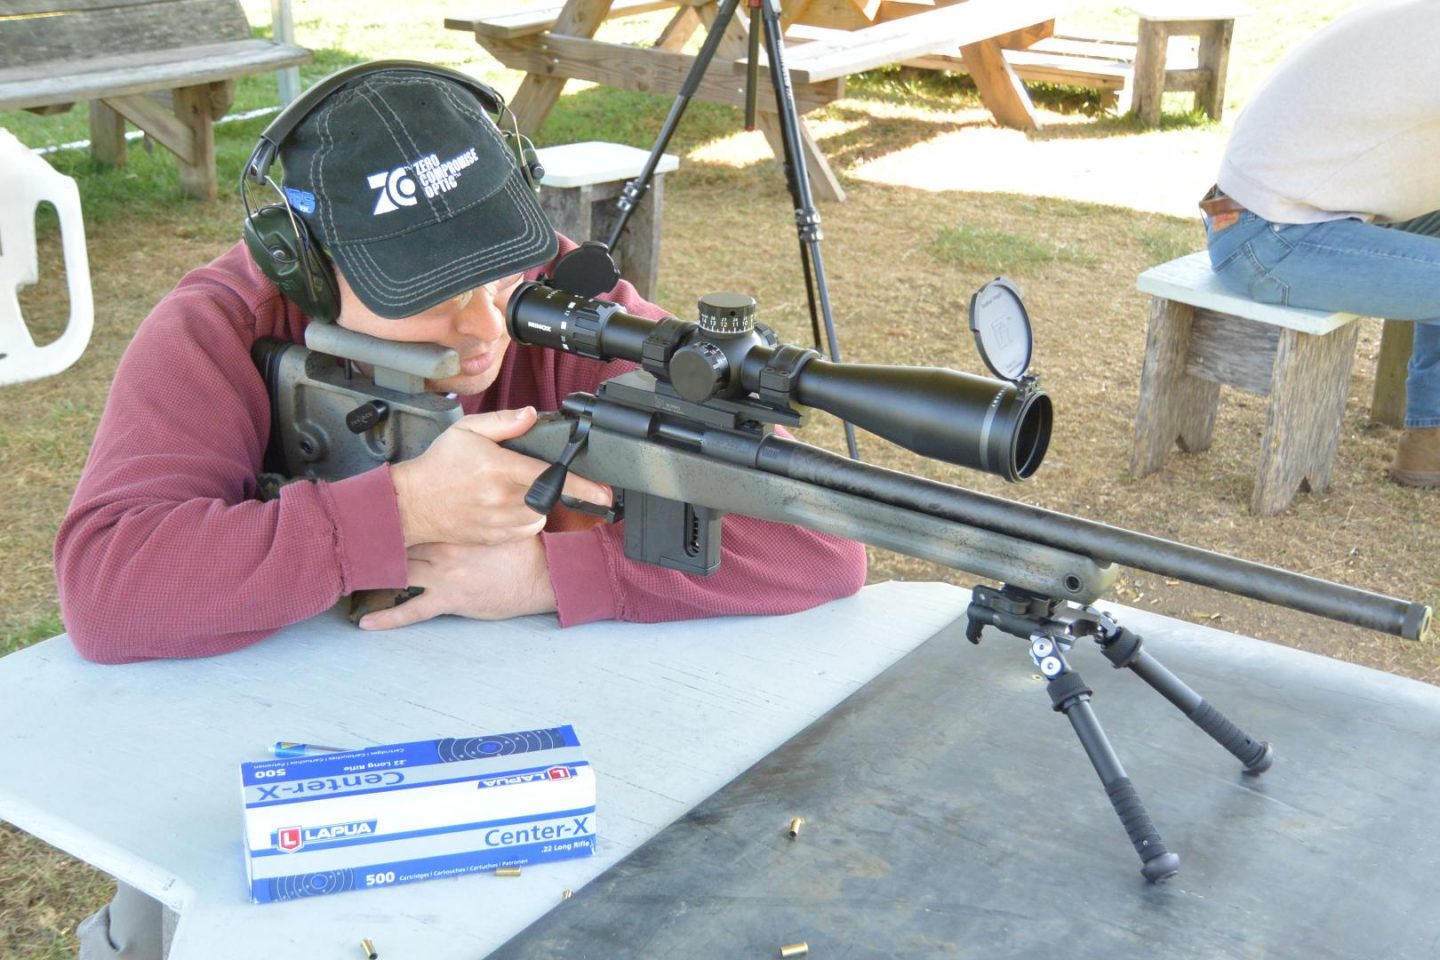 Doing some long range .22lr shooting with the Vudoo V-22, in a Grayboe Phoenix stock